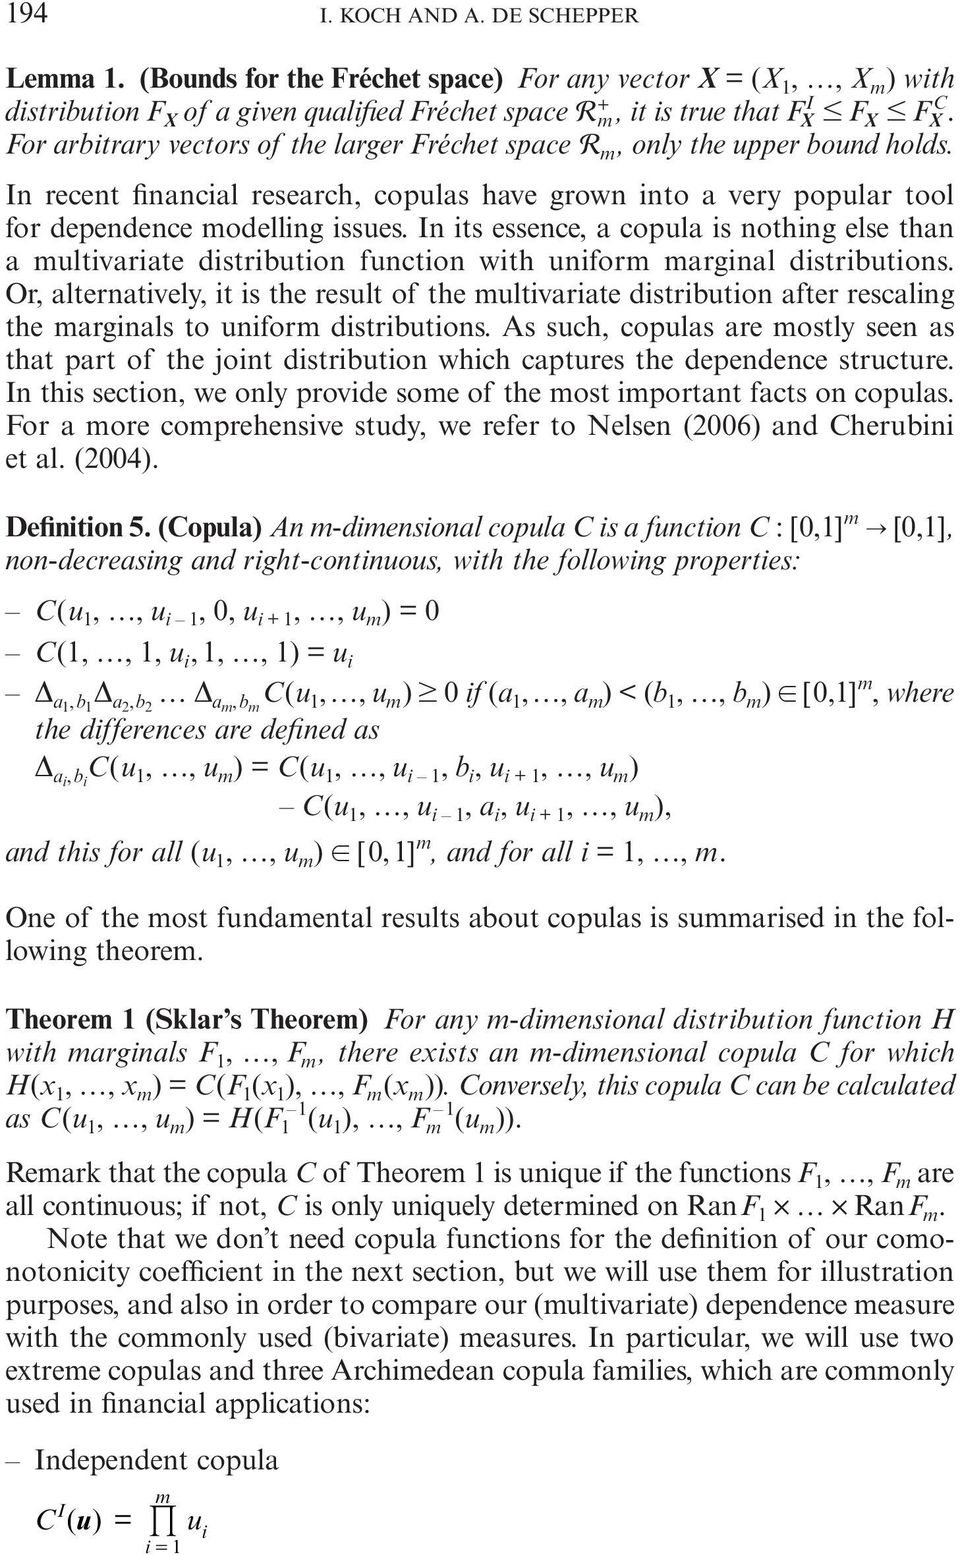 In its essence, a copula is nothing else than a ultivariate distribution function with unifor arginal distributions.